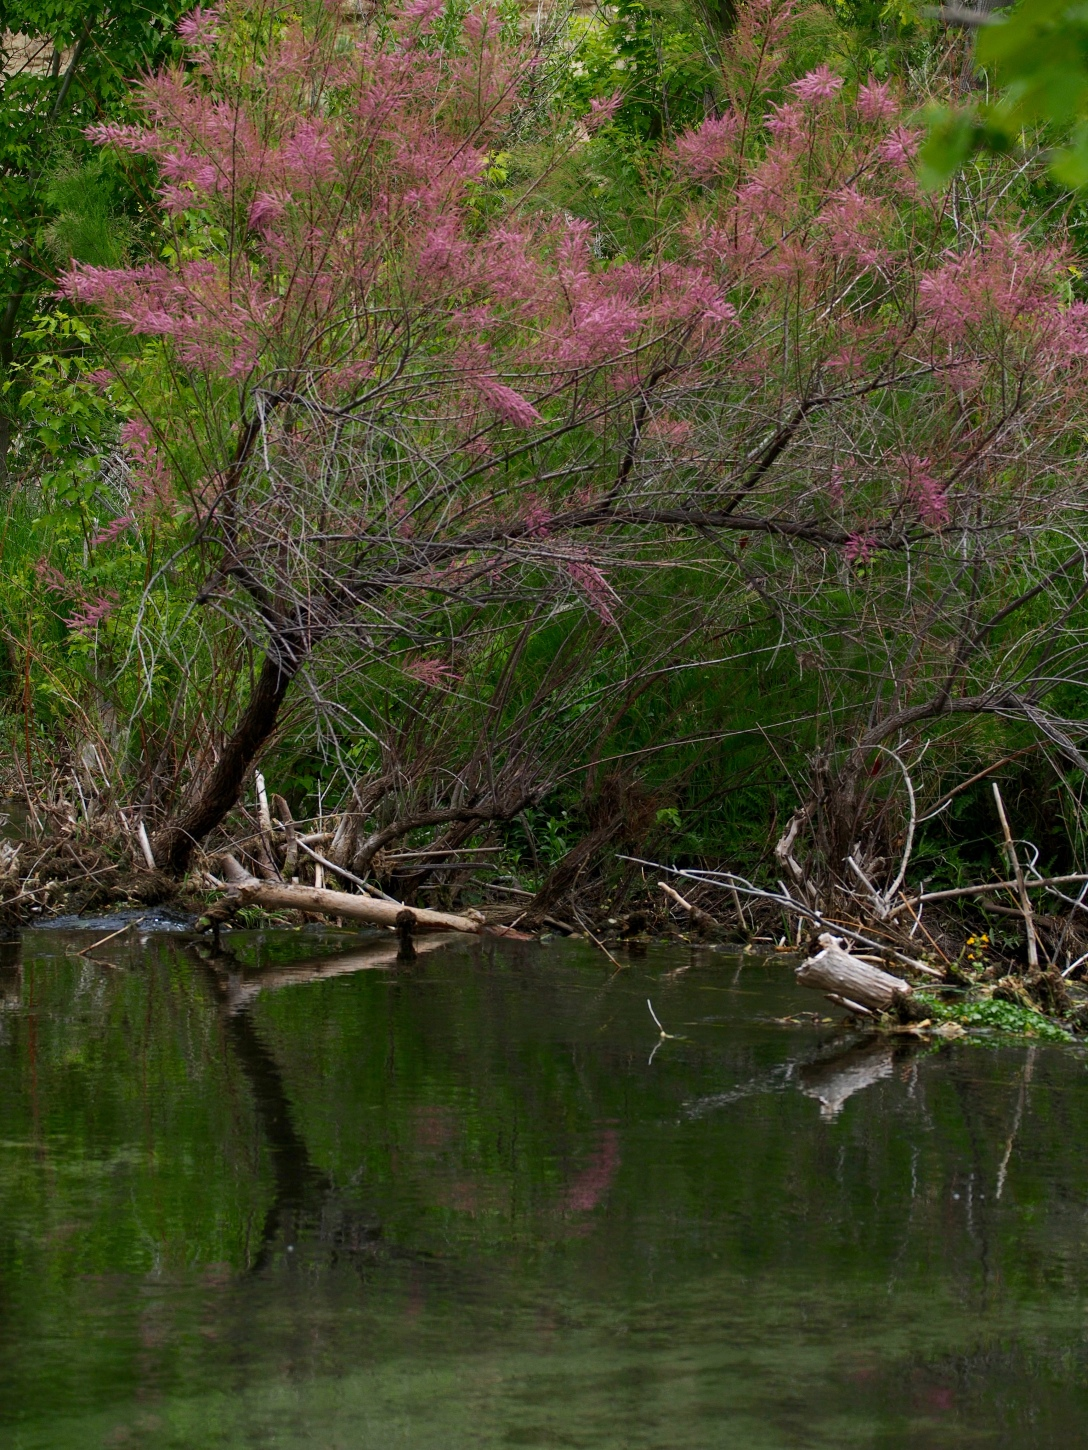 An invasive tamarisk tree blooms over a beaver dam at the end of Jones Hole Creek. Tamarisk, introduced to the Southwest as ornamental, unfortunately destroys spawning habitat for native fish, as well as other ecological impacts.